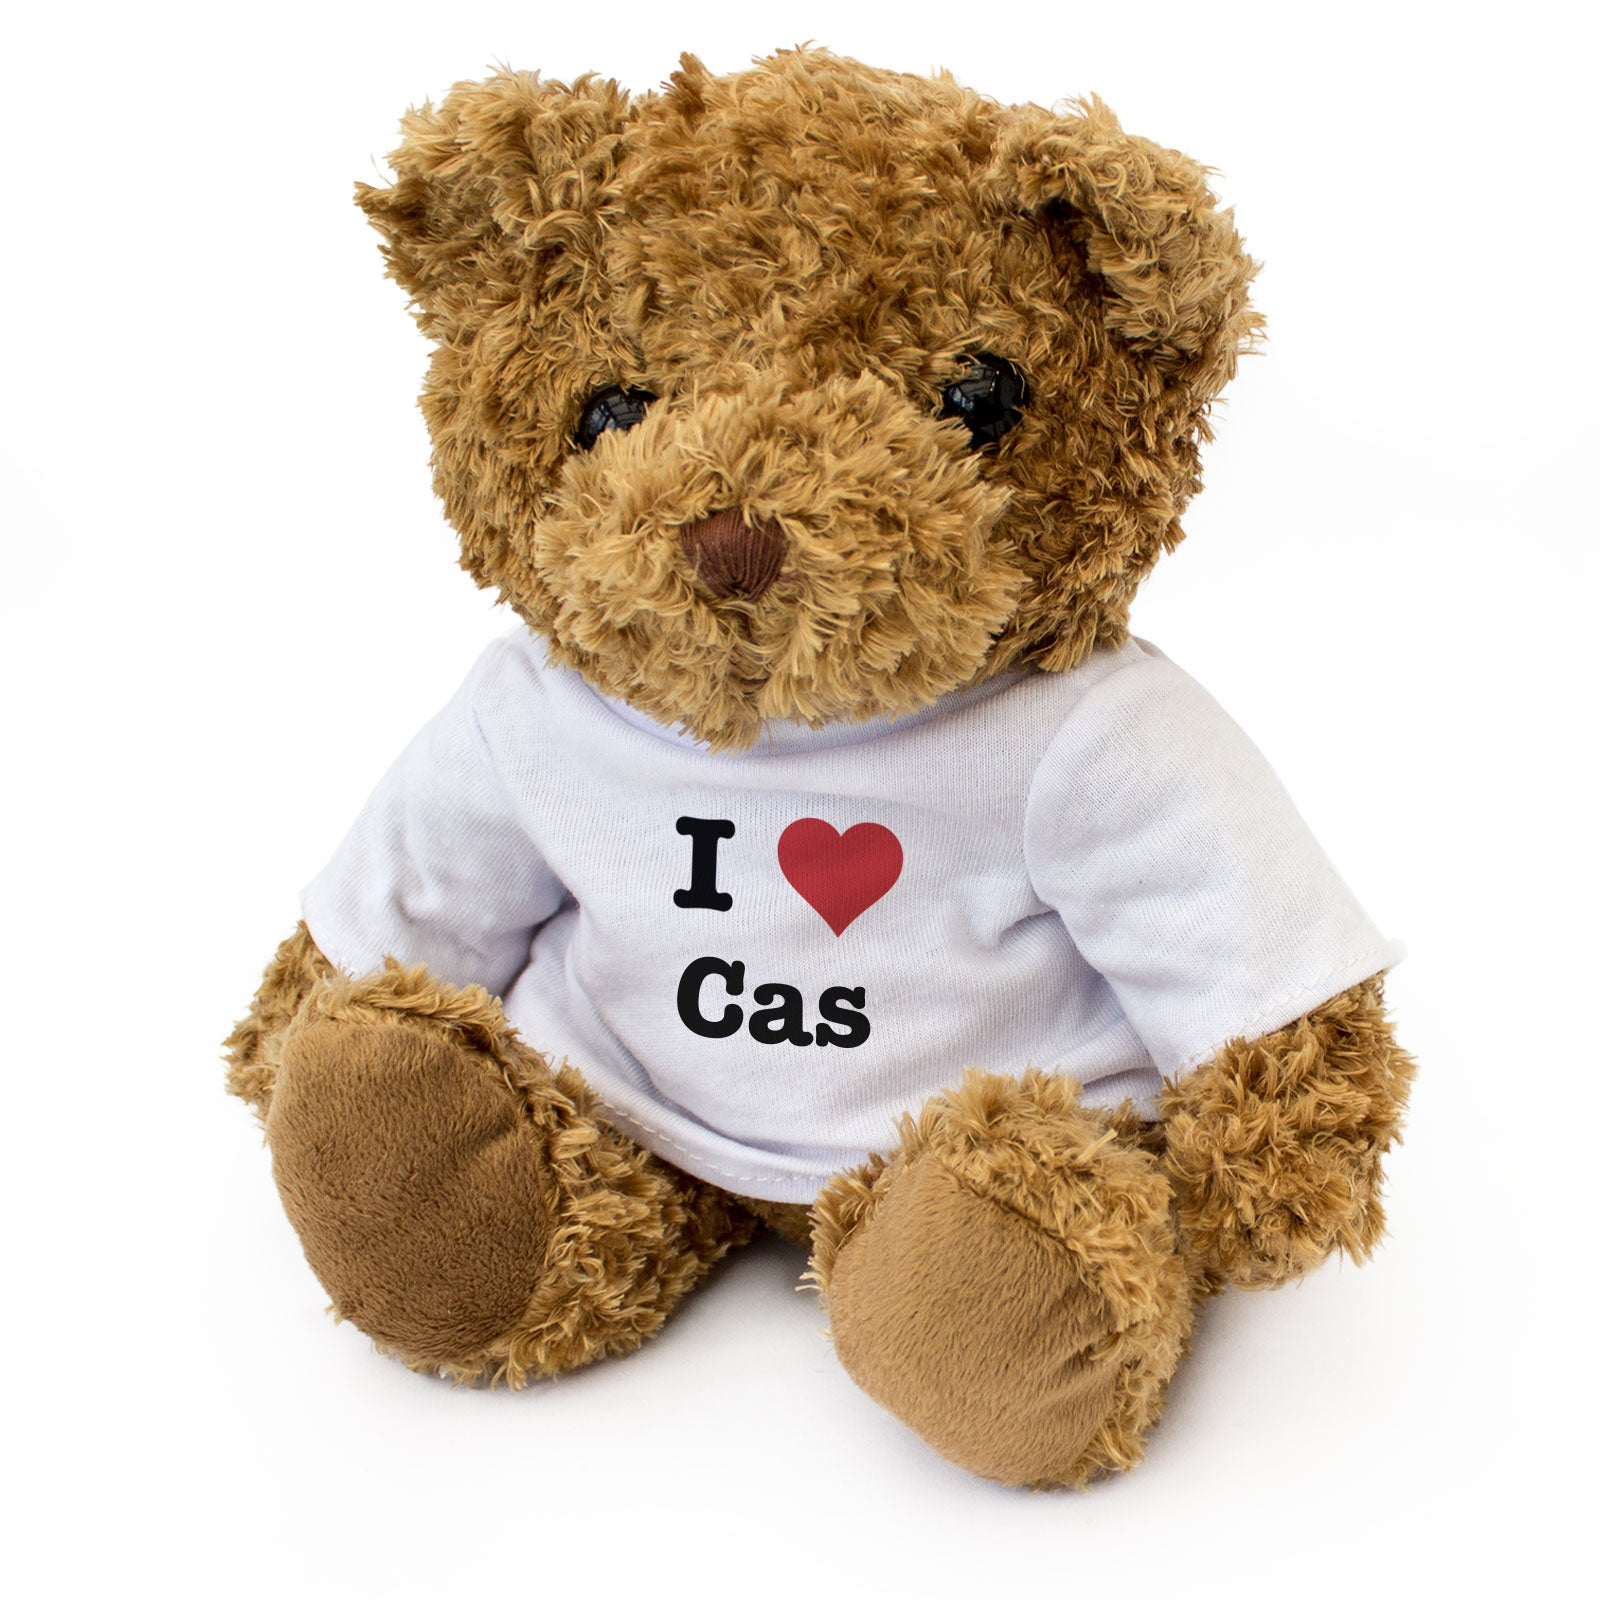 I Love Cas - Teddy Bear